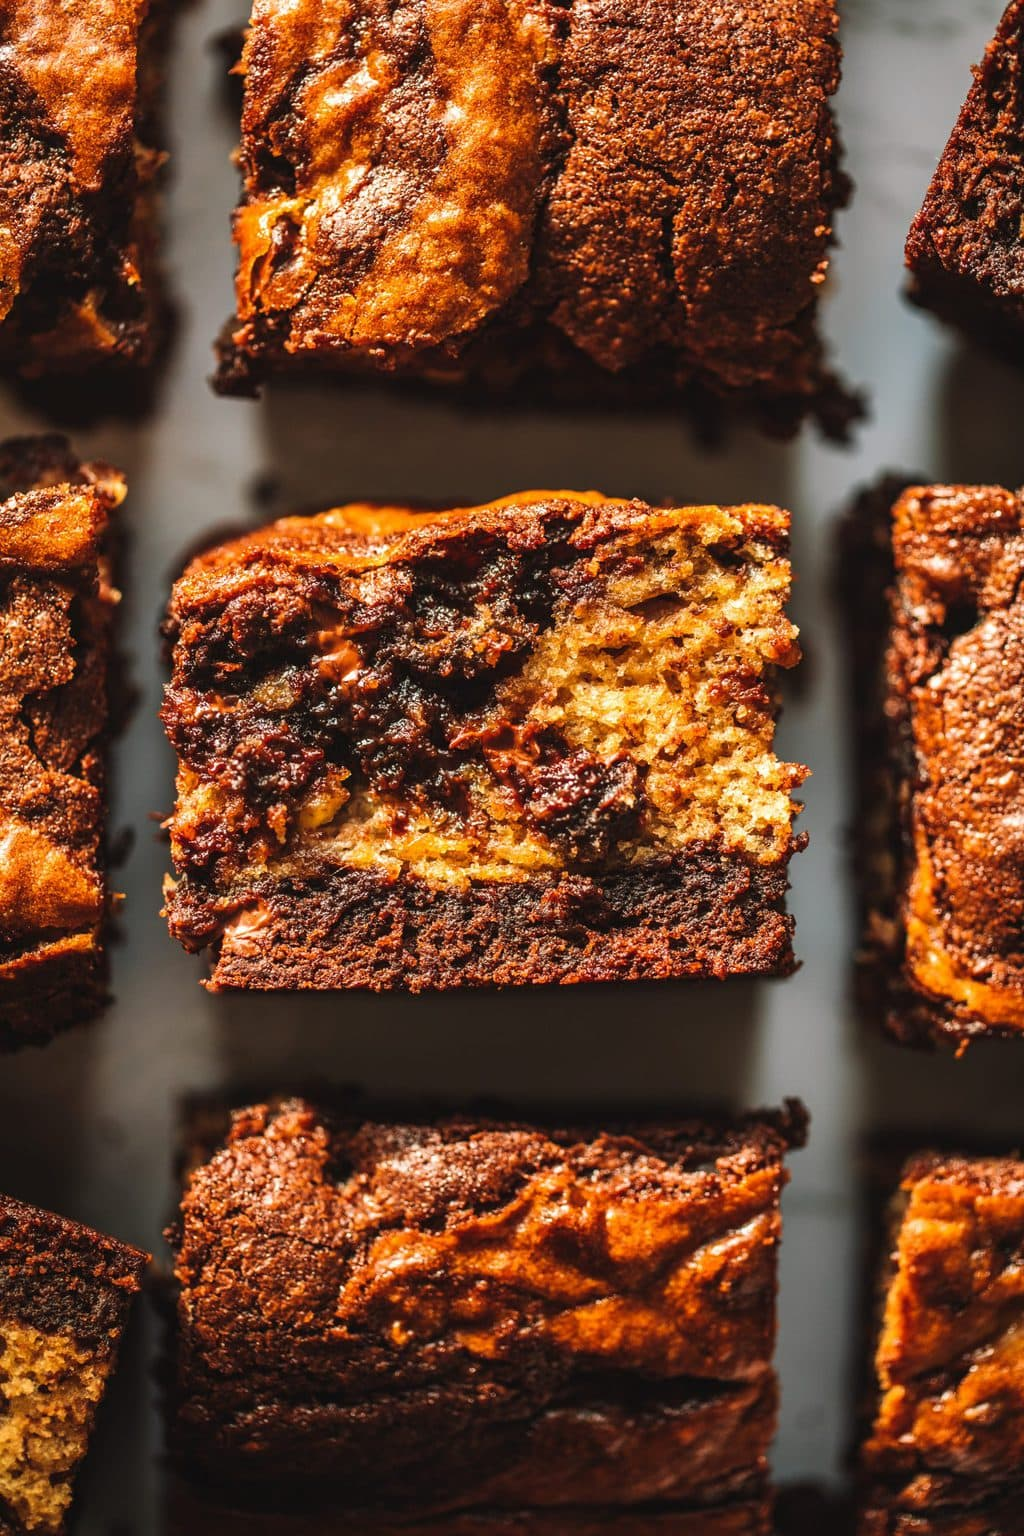 A single banana bread brownie with a fudgy center.